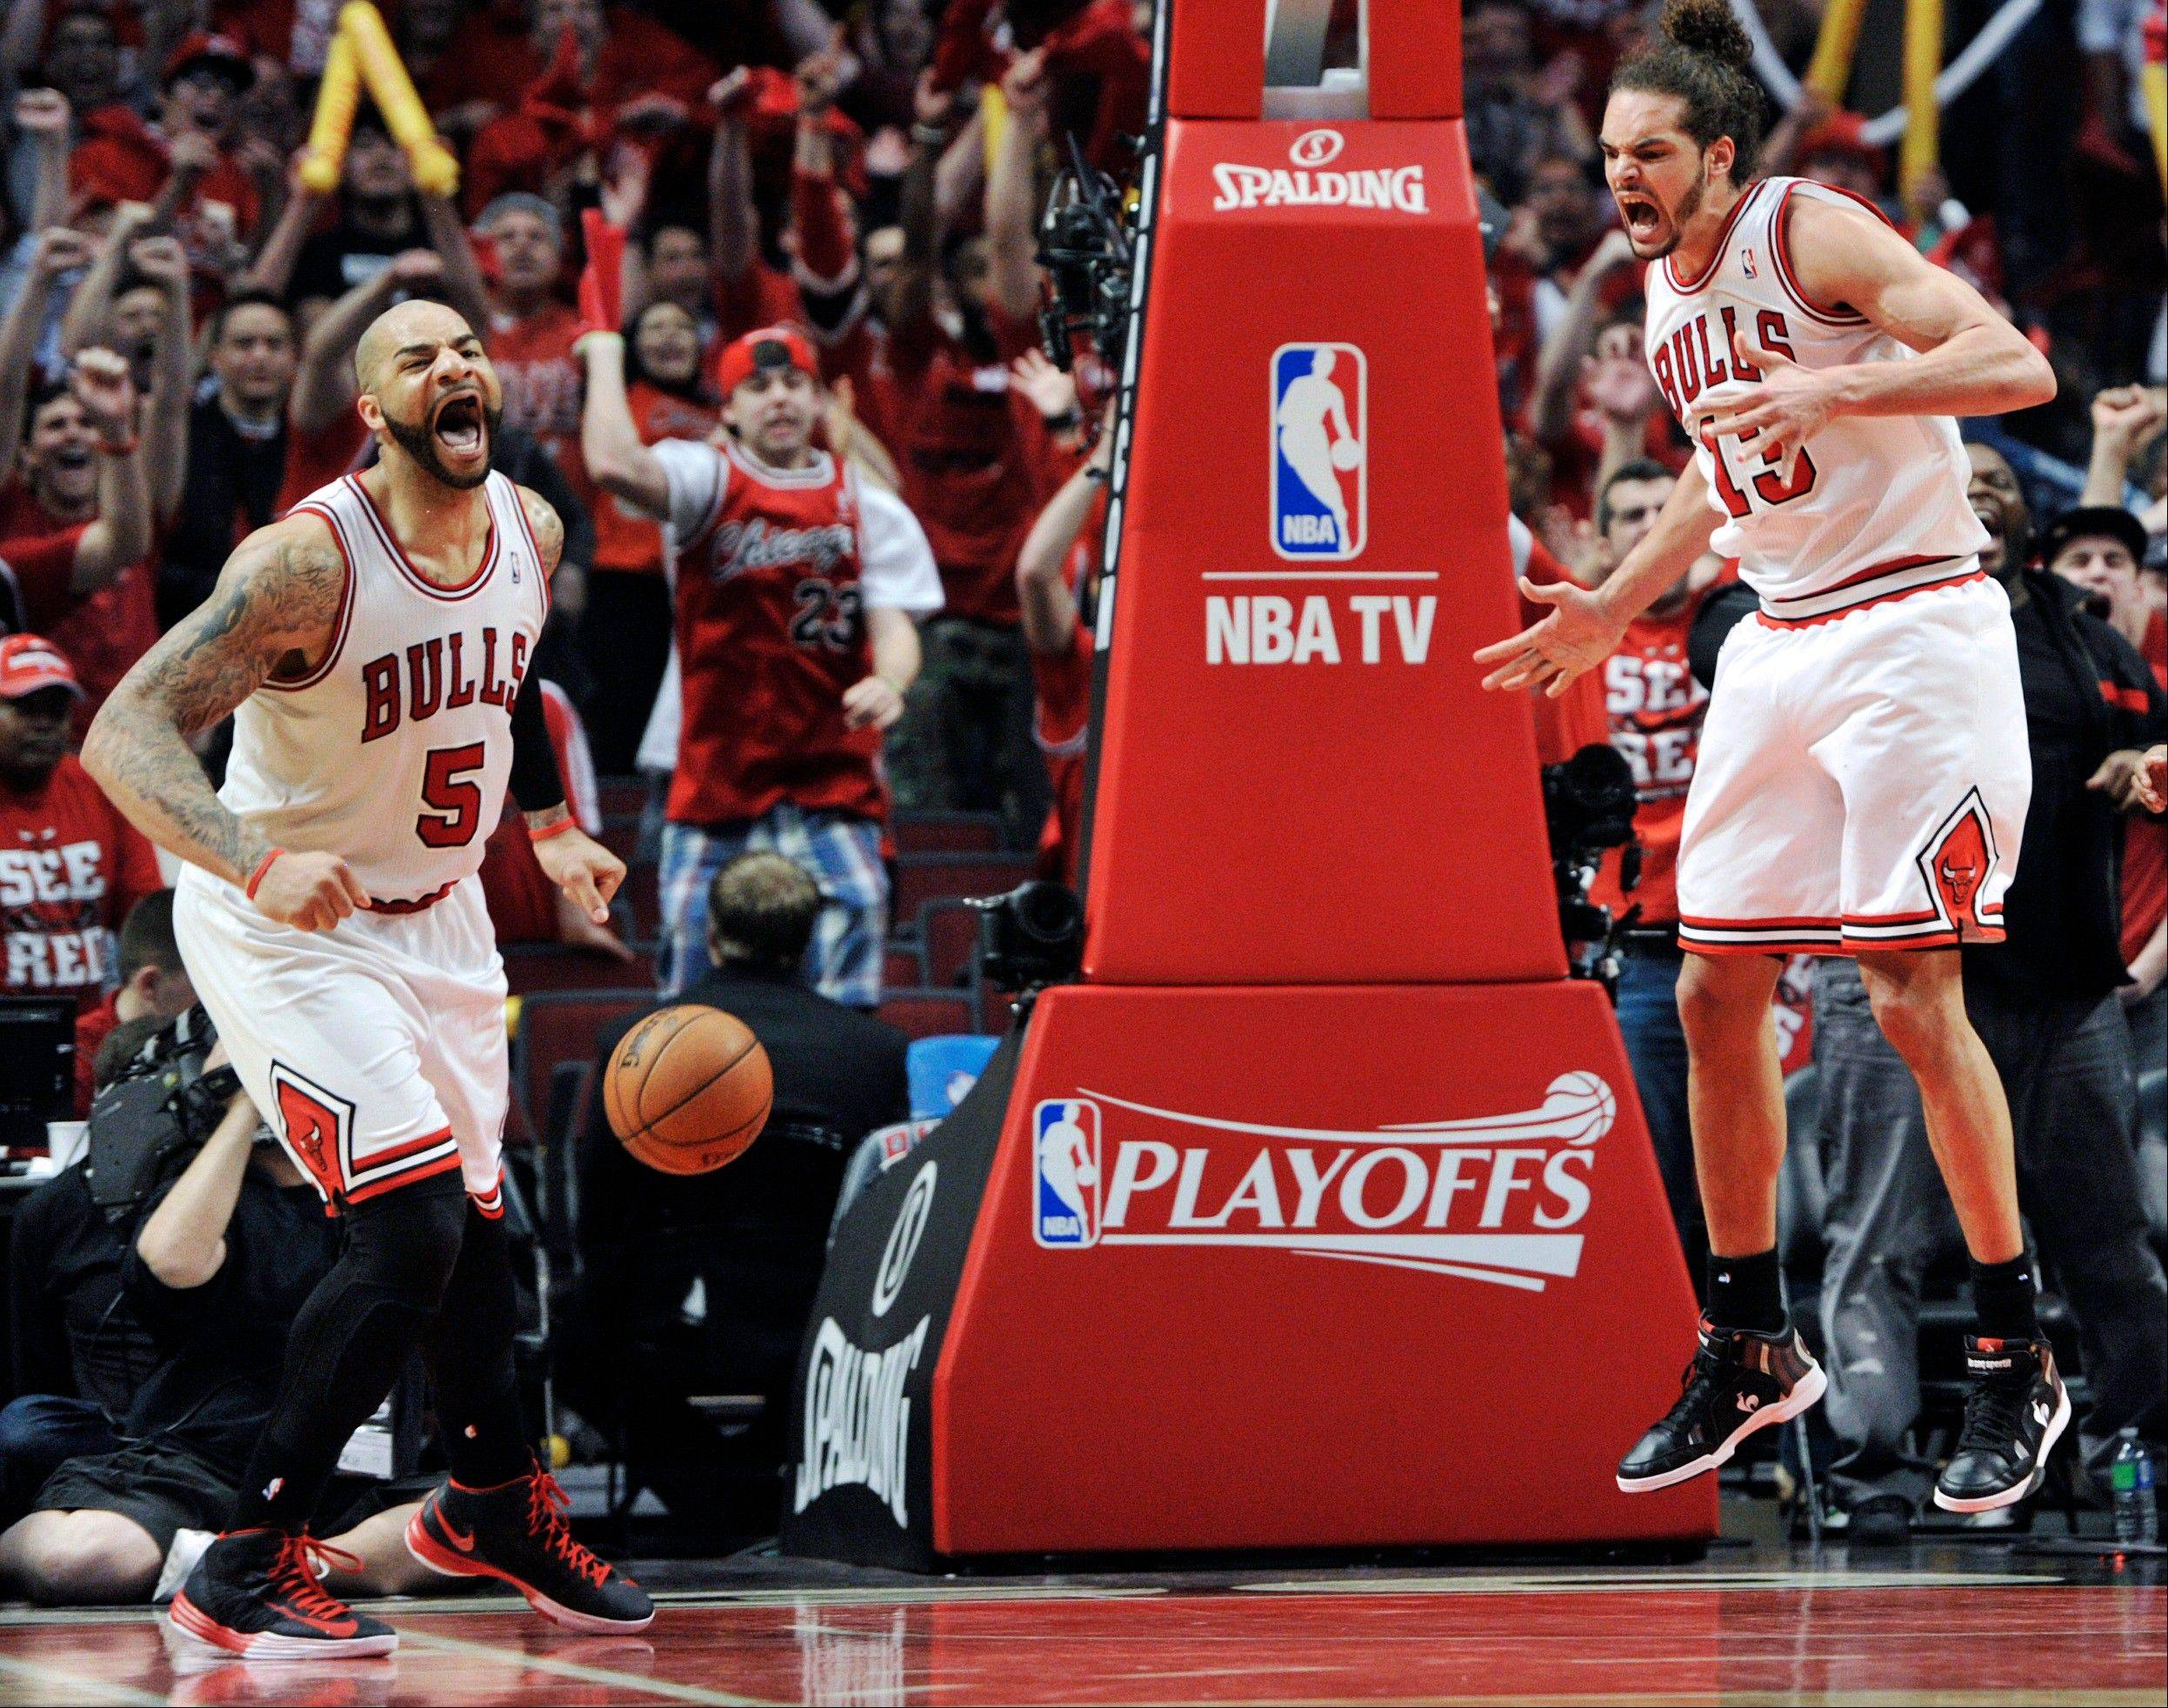 Chicago Bulls' Carlos Boozer (5) and Joakim Noah (13) celebrate a basket against the Brooklyn Nets during the second overtime in Game 4 of their first-round NBA basketball playoff series Saturday, April 27, 2013, in Chicago. The Bulls won 142-134 in three overtimes.